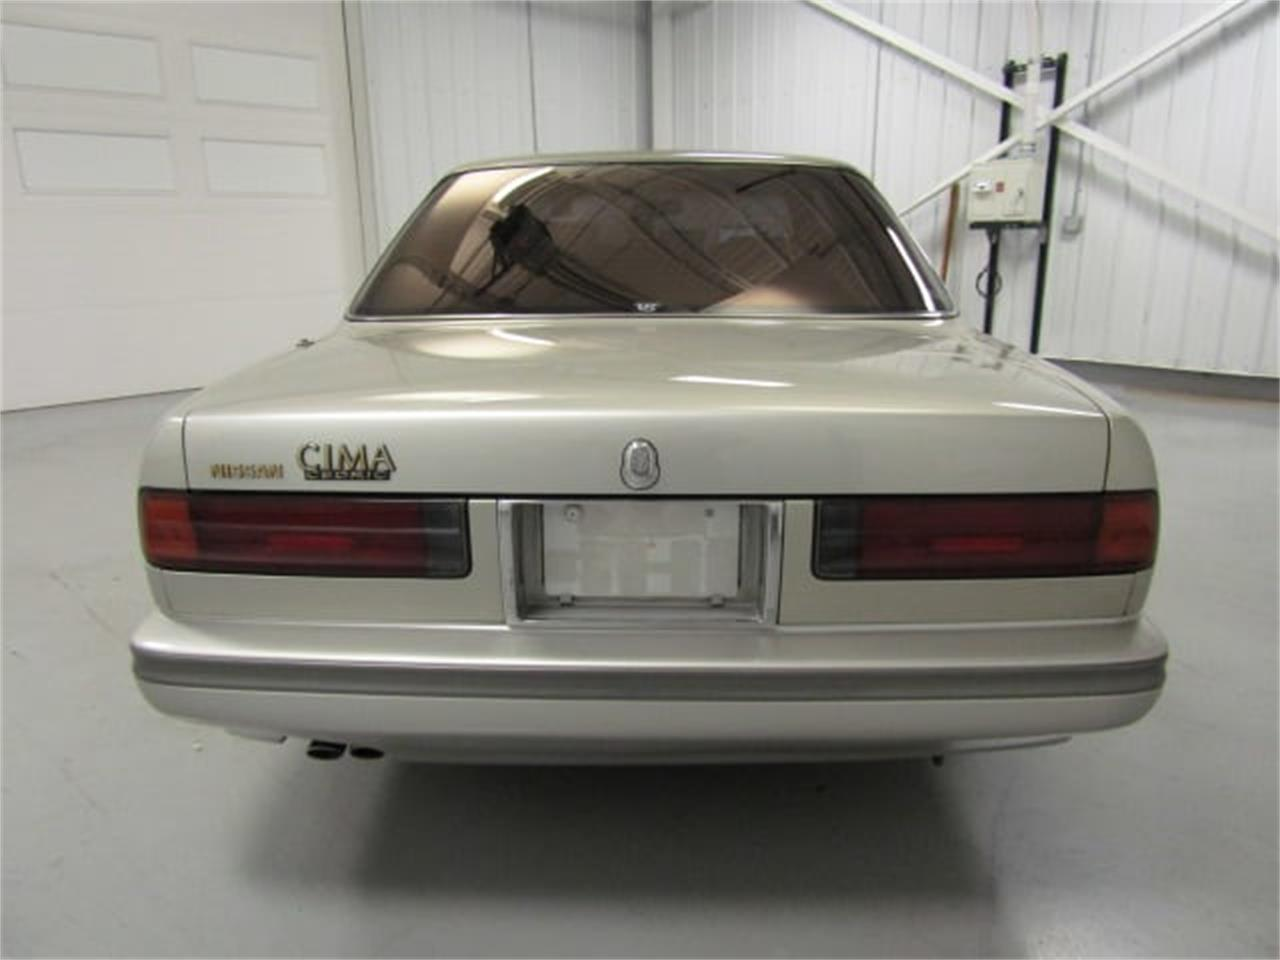 Large Picture of 1990 Nissan Cima located in Virginia Offered by Duncan Imports & Classic Cars - JZ2V